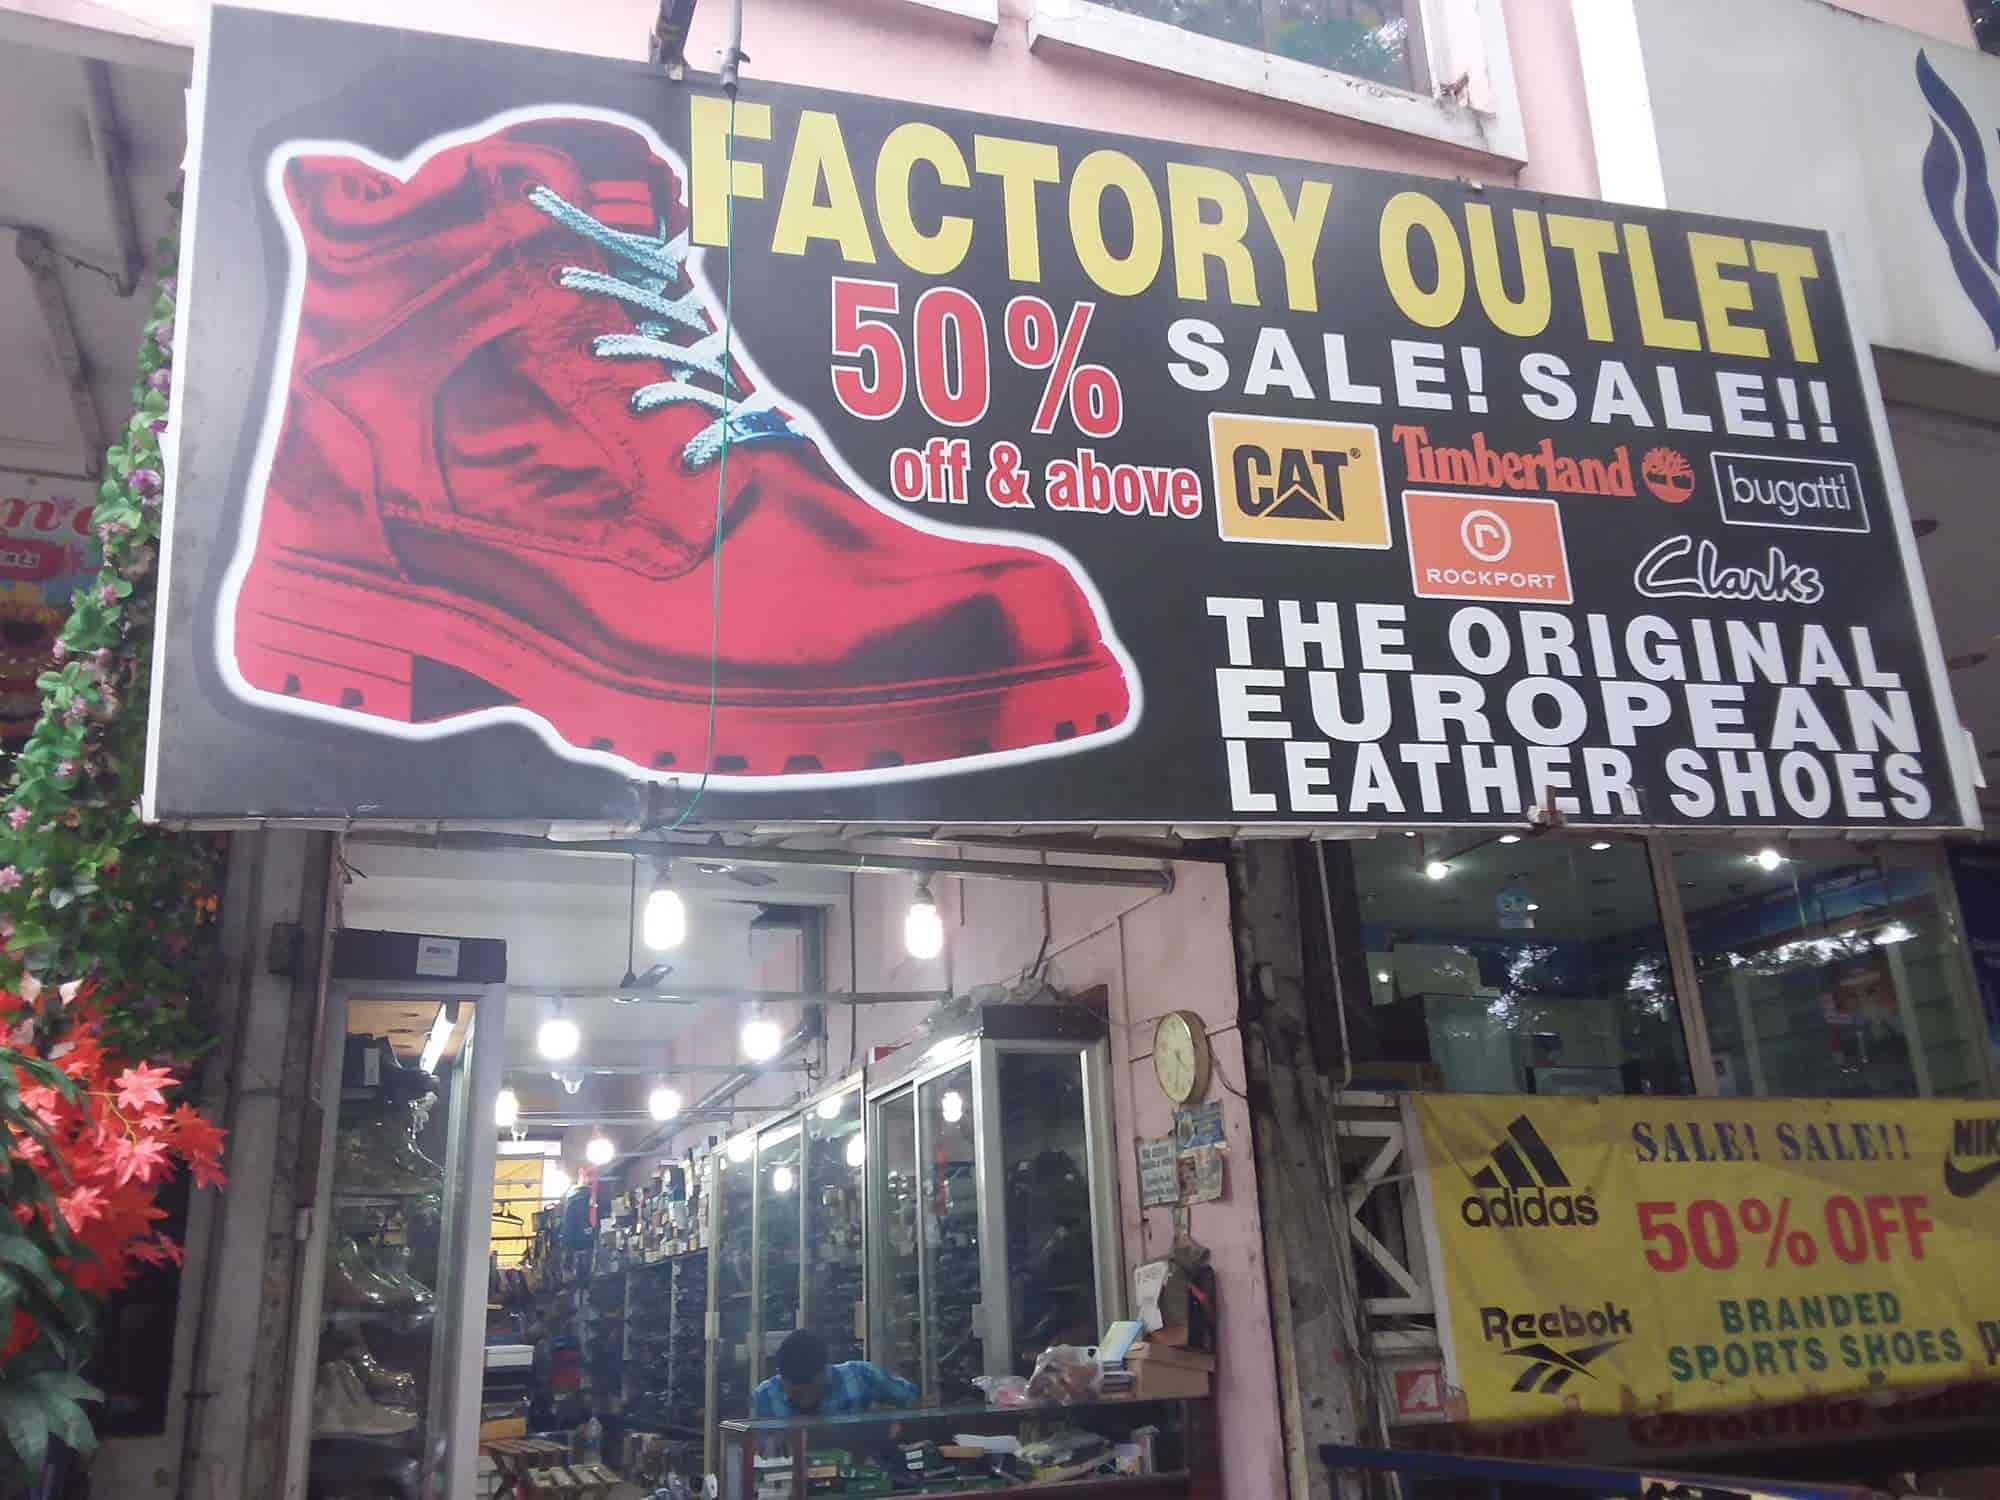 c670f8eb79b Factory Outlet Shoes